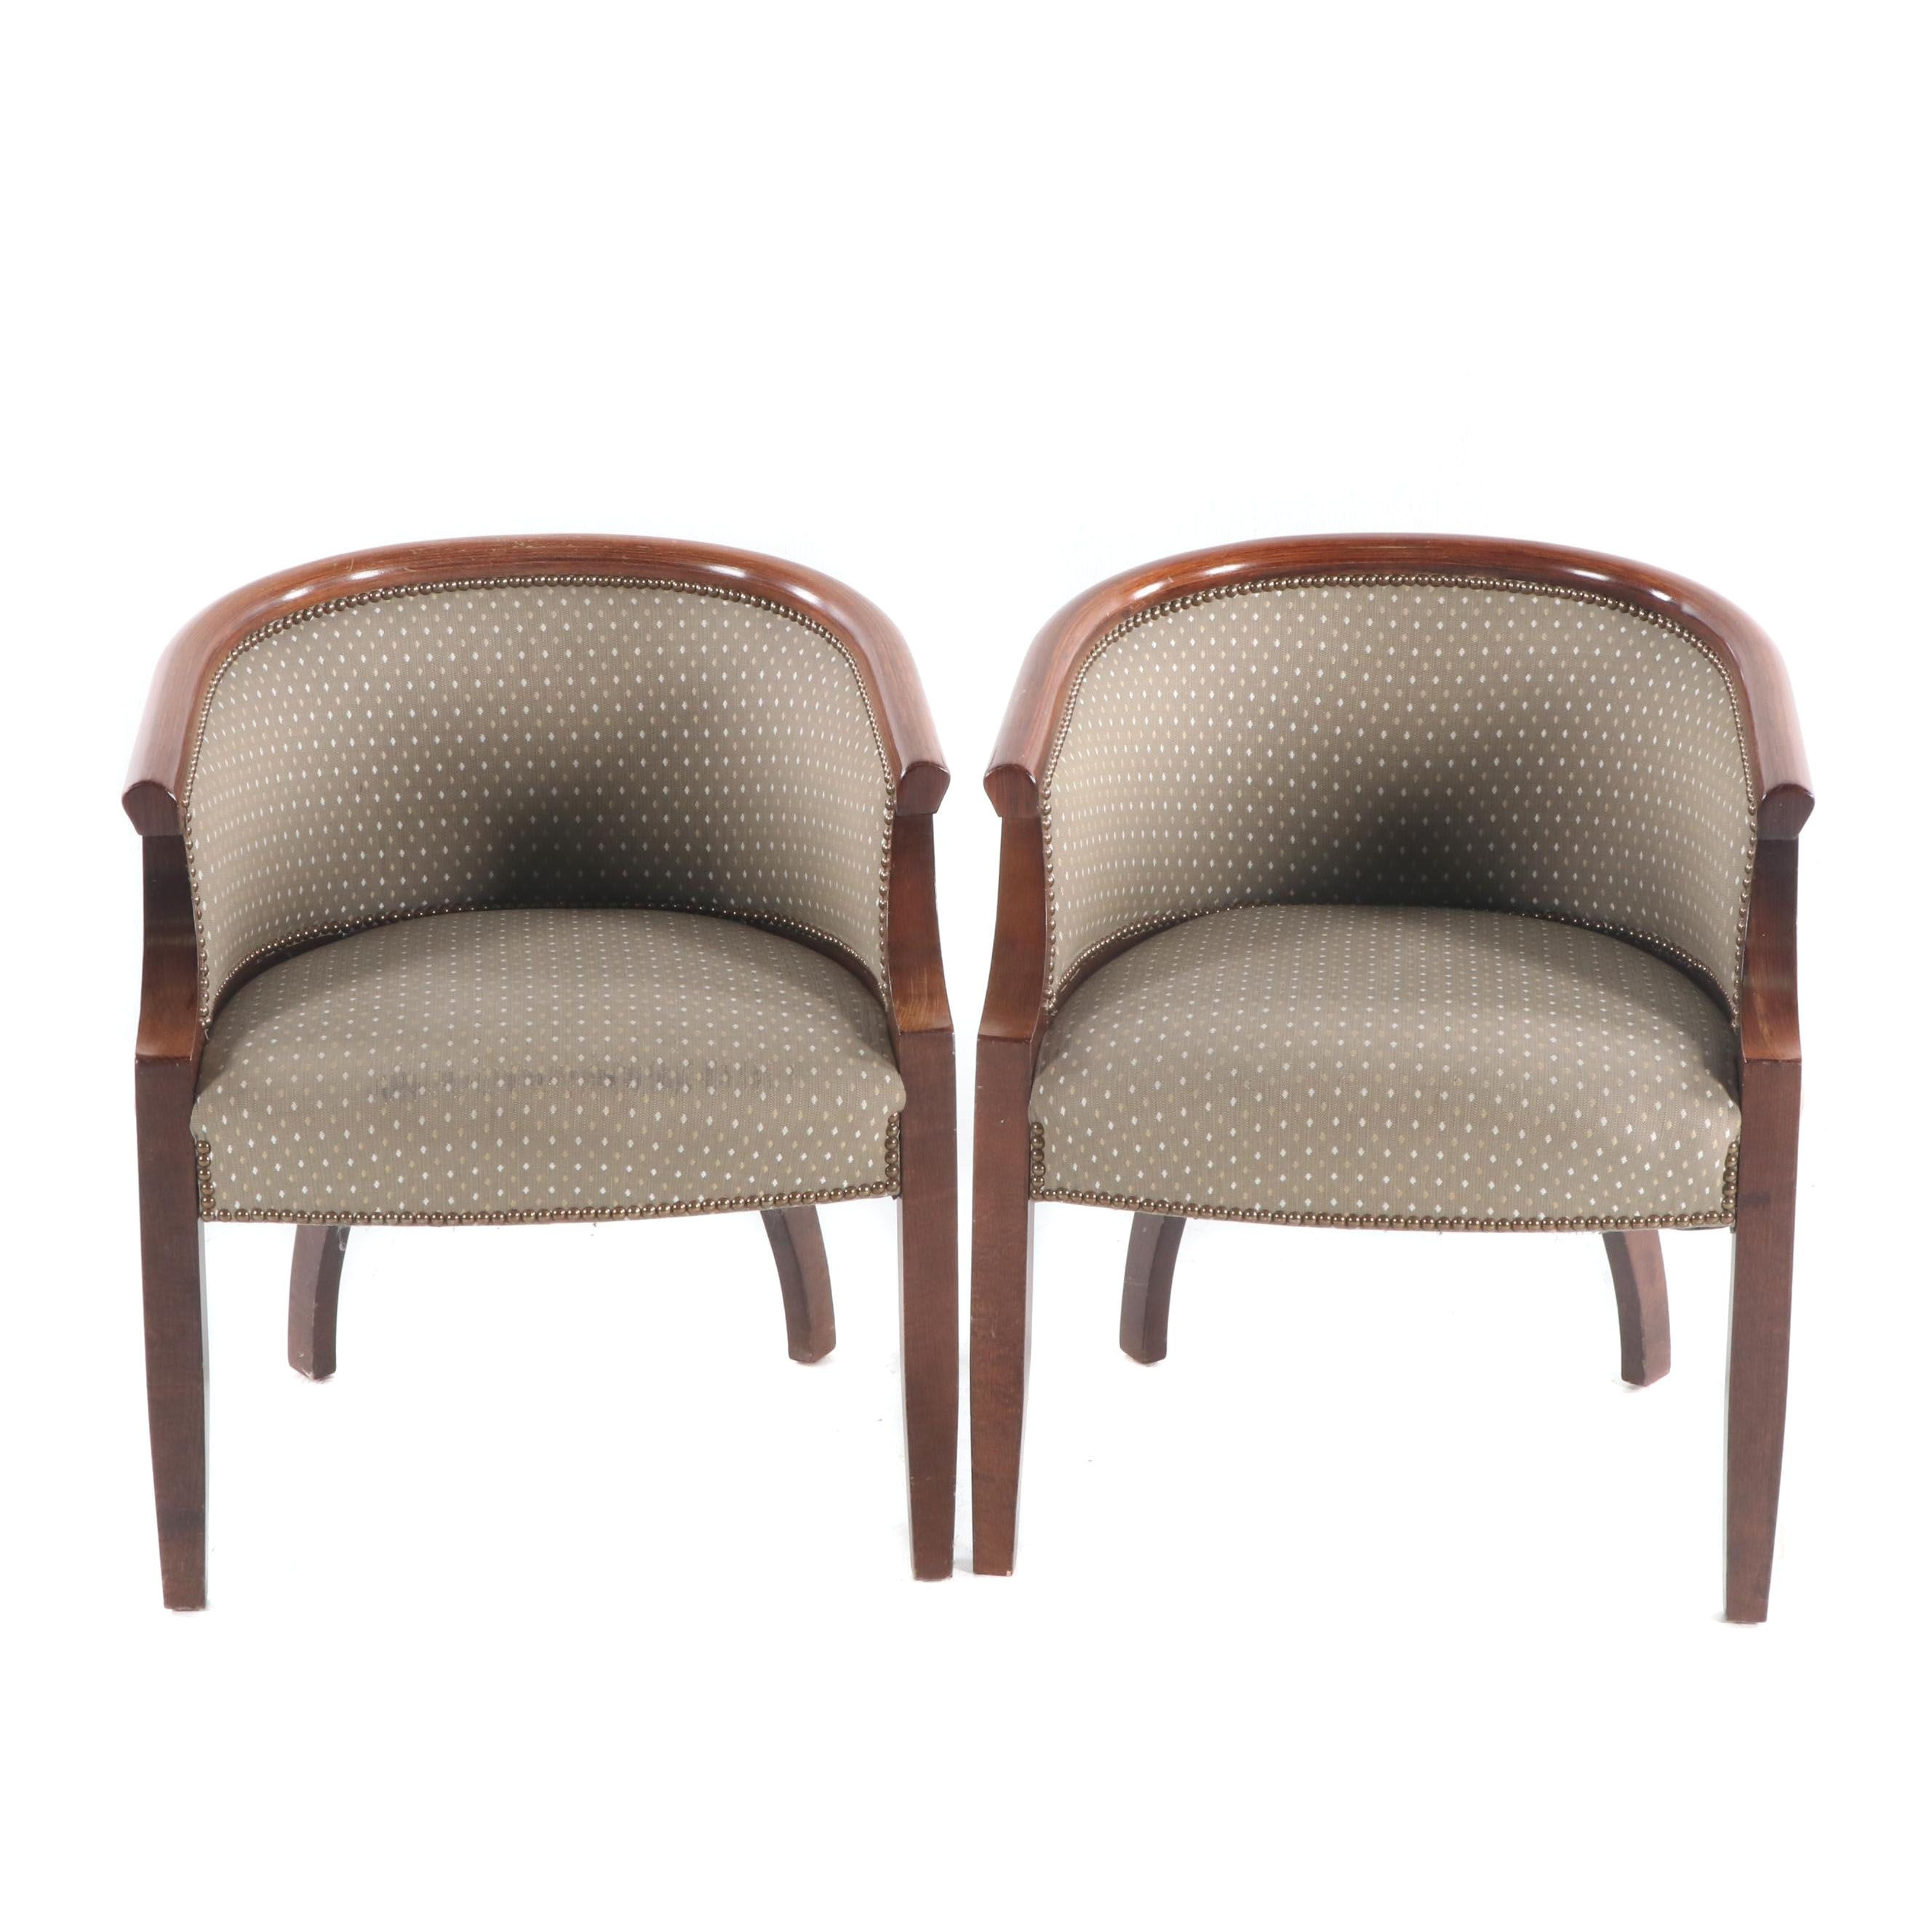 Upholstered Tub Chairs, Late 20th Century